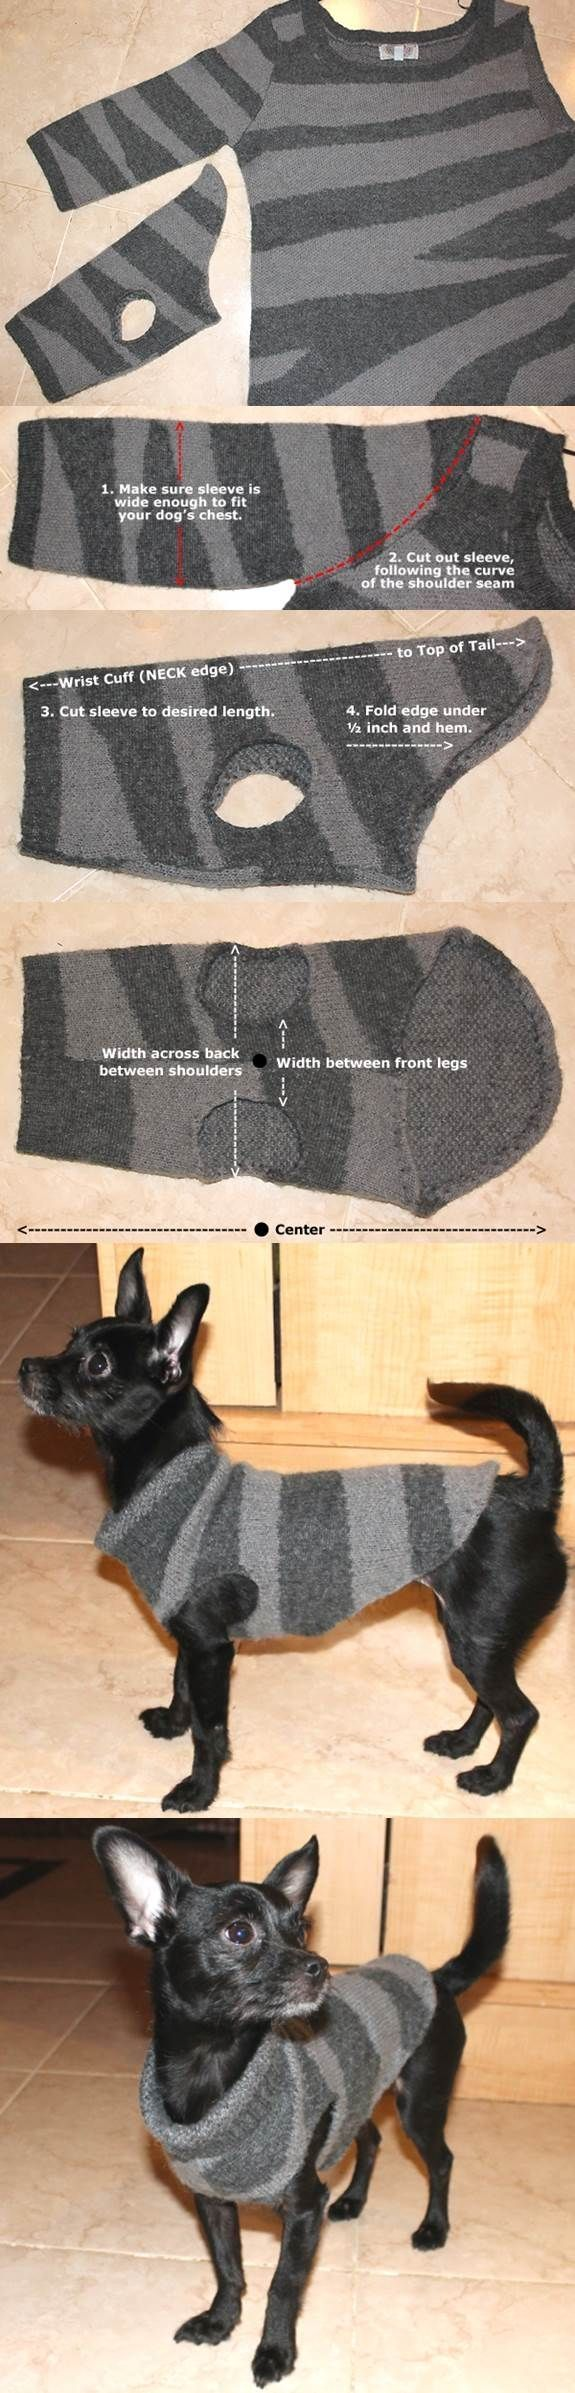 DIY Dog Sweater from a Used Sweater Sleeve 2 by denimmeriah